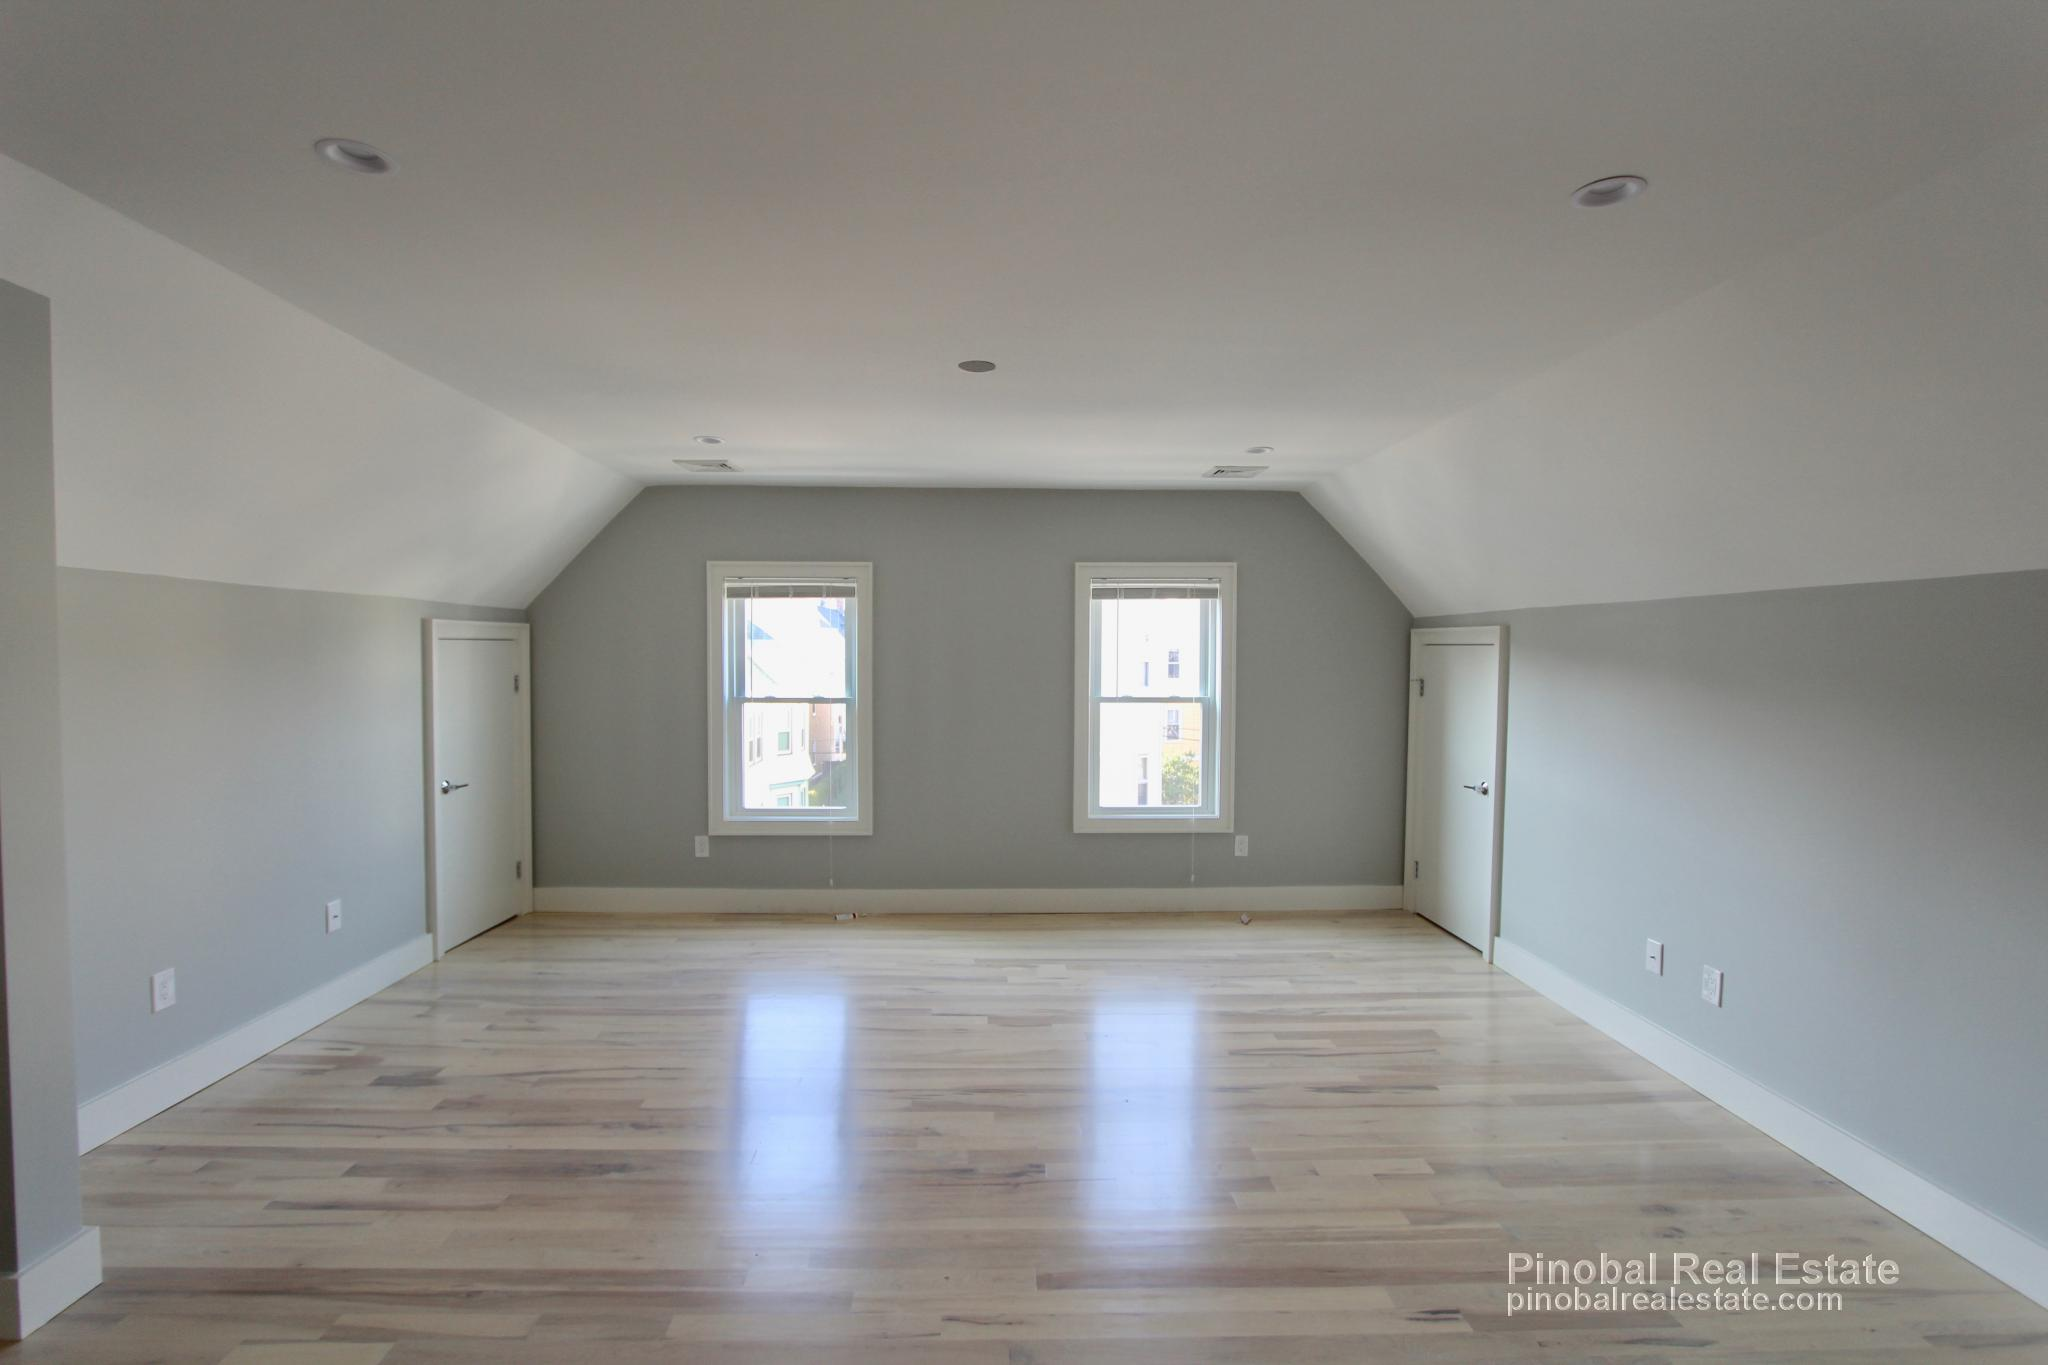 Bedroom Apartment For Rent In Roslindale Ma